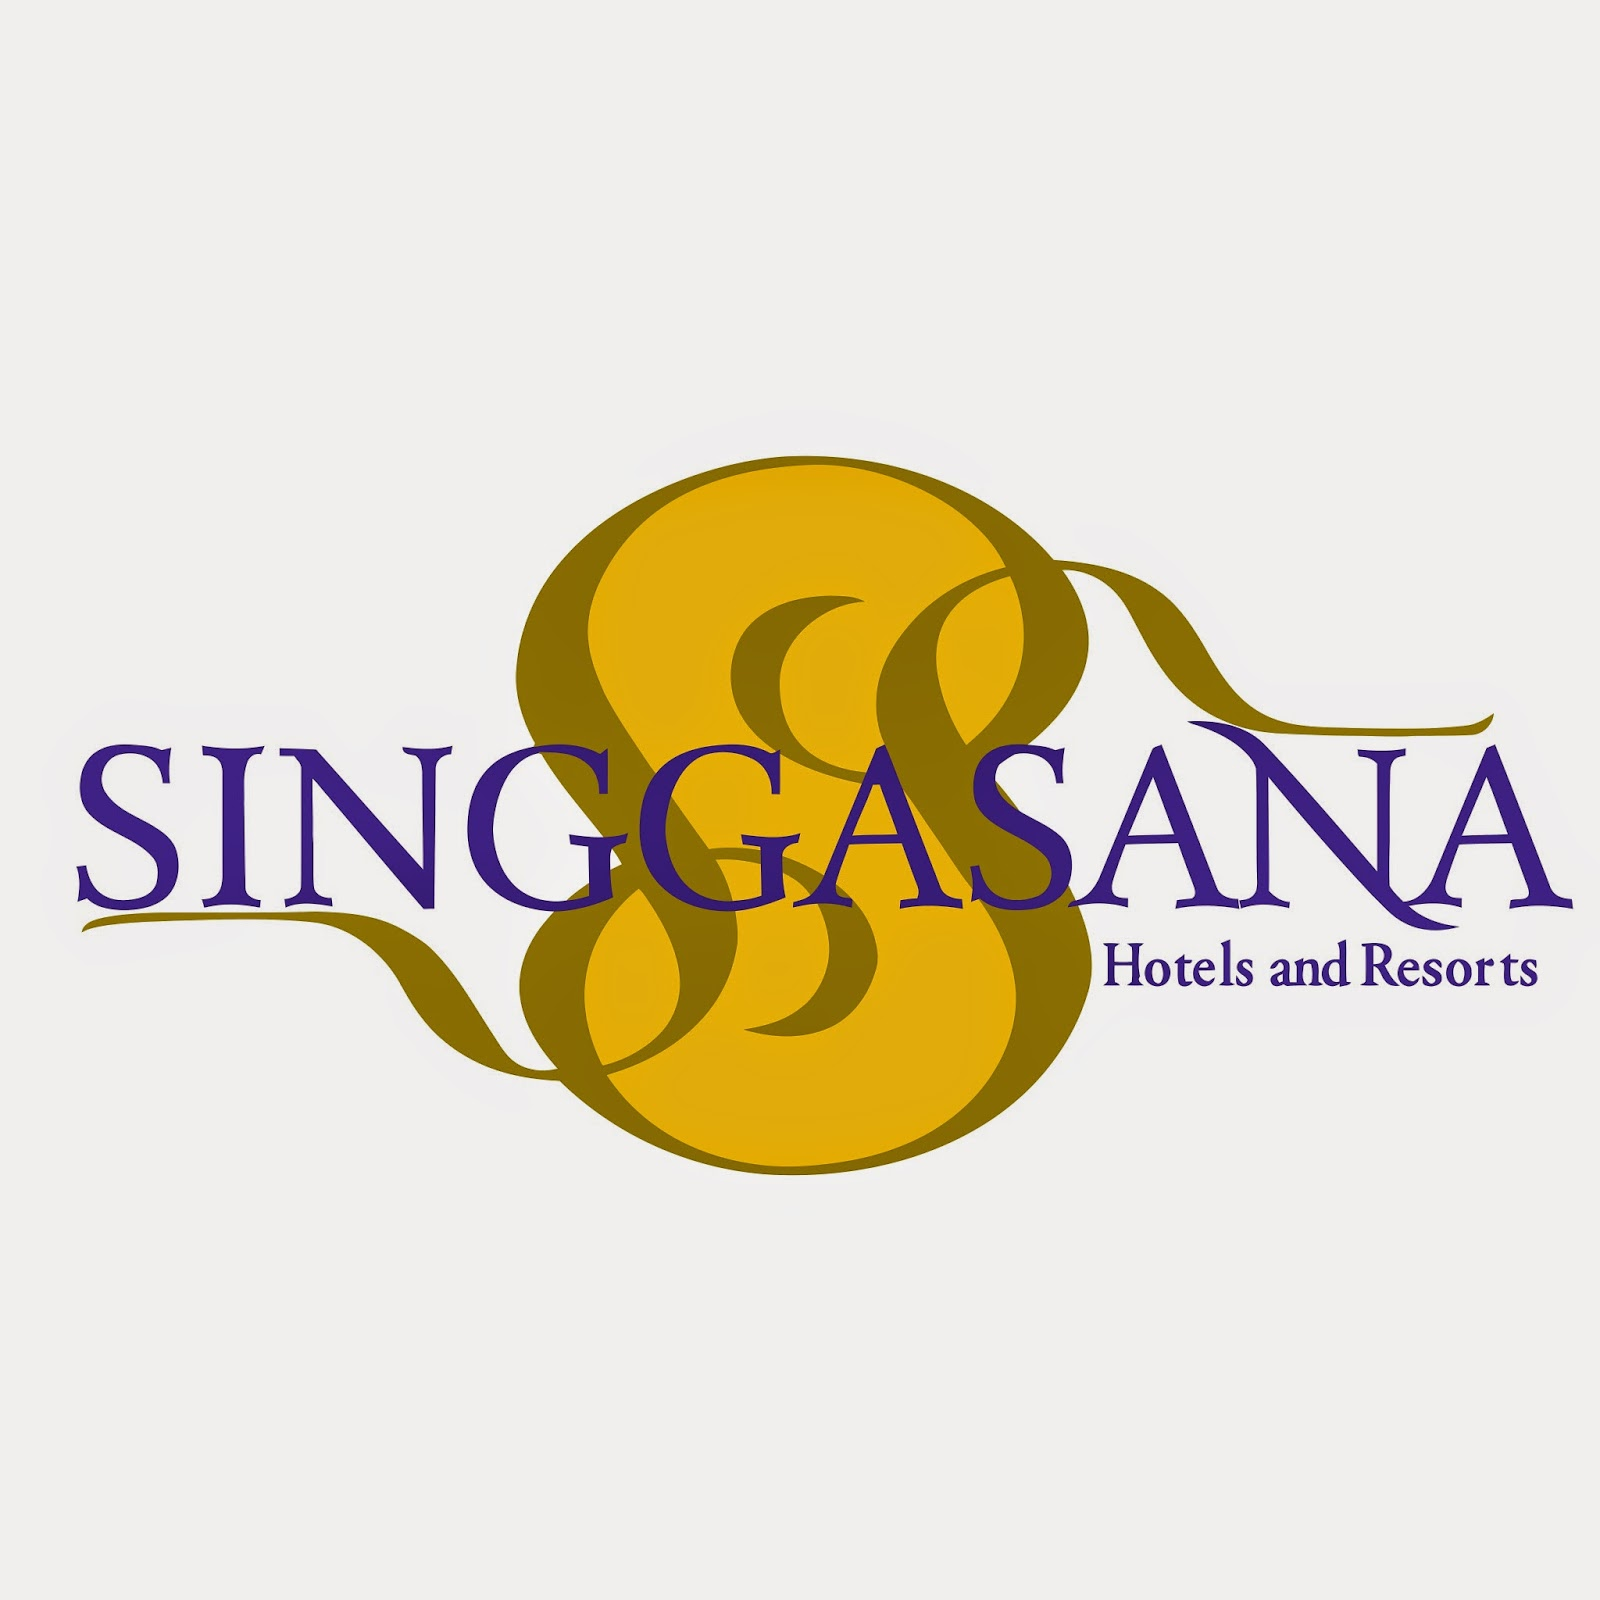 Singgasana Hotels & Resorts